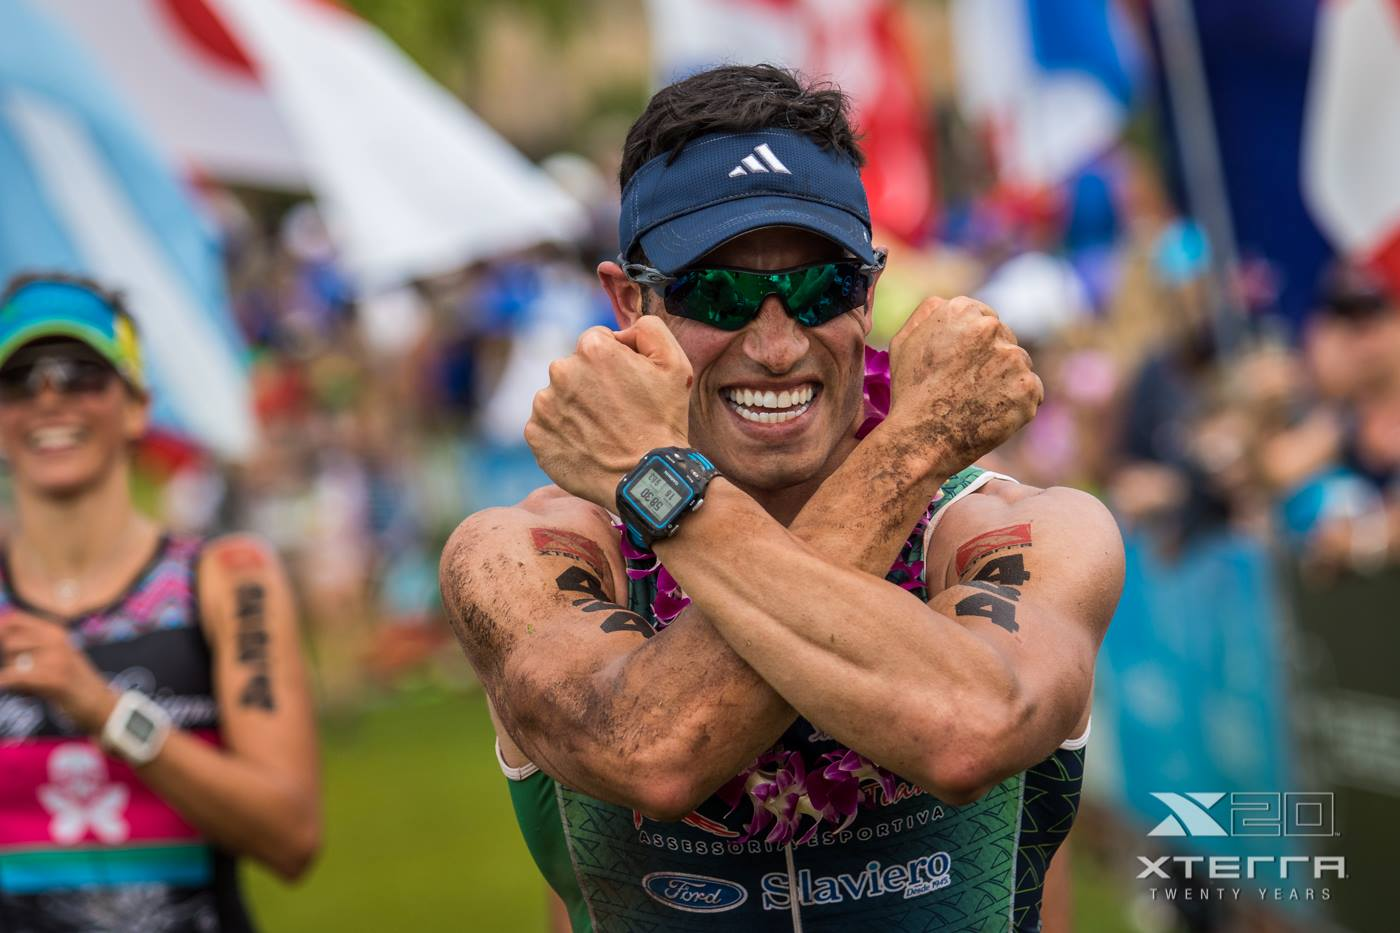 XTERRA_WORLD_CHAMPIONSHIP_2015_00090